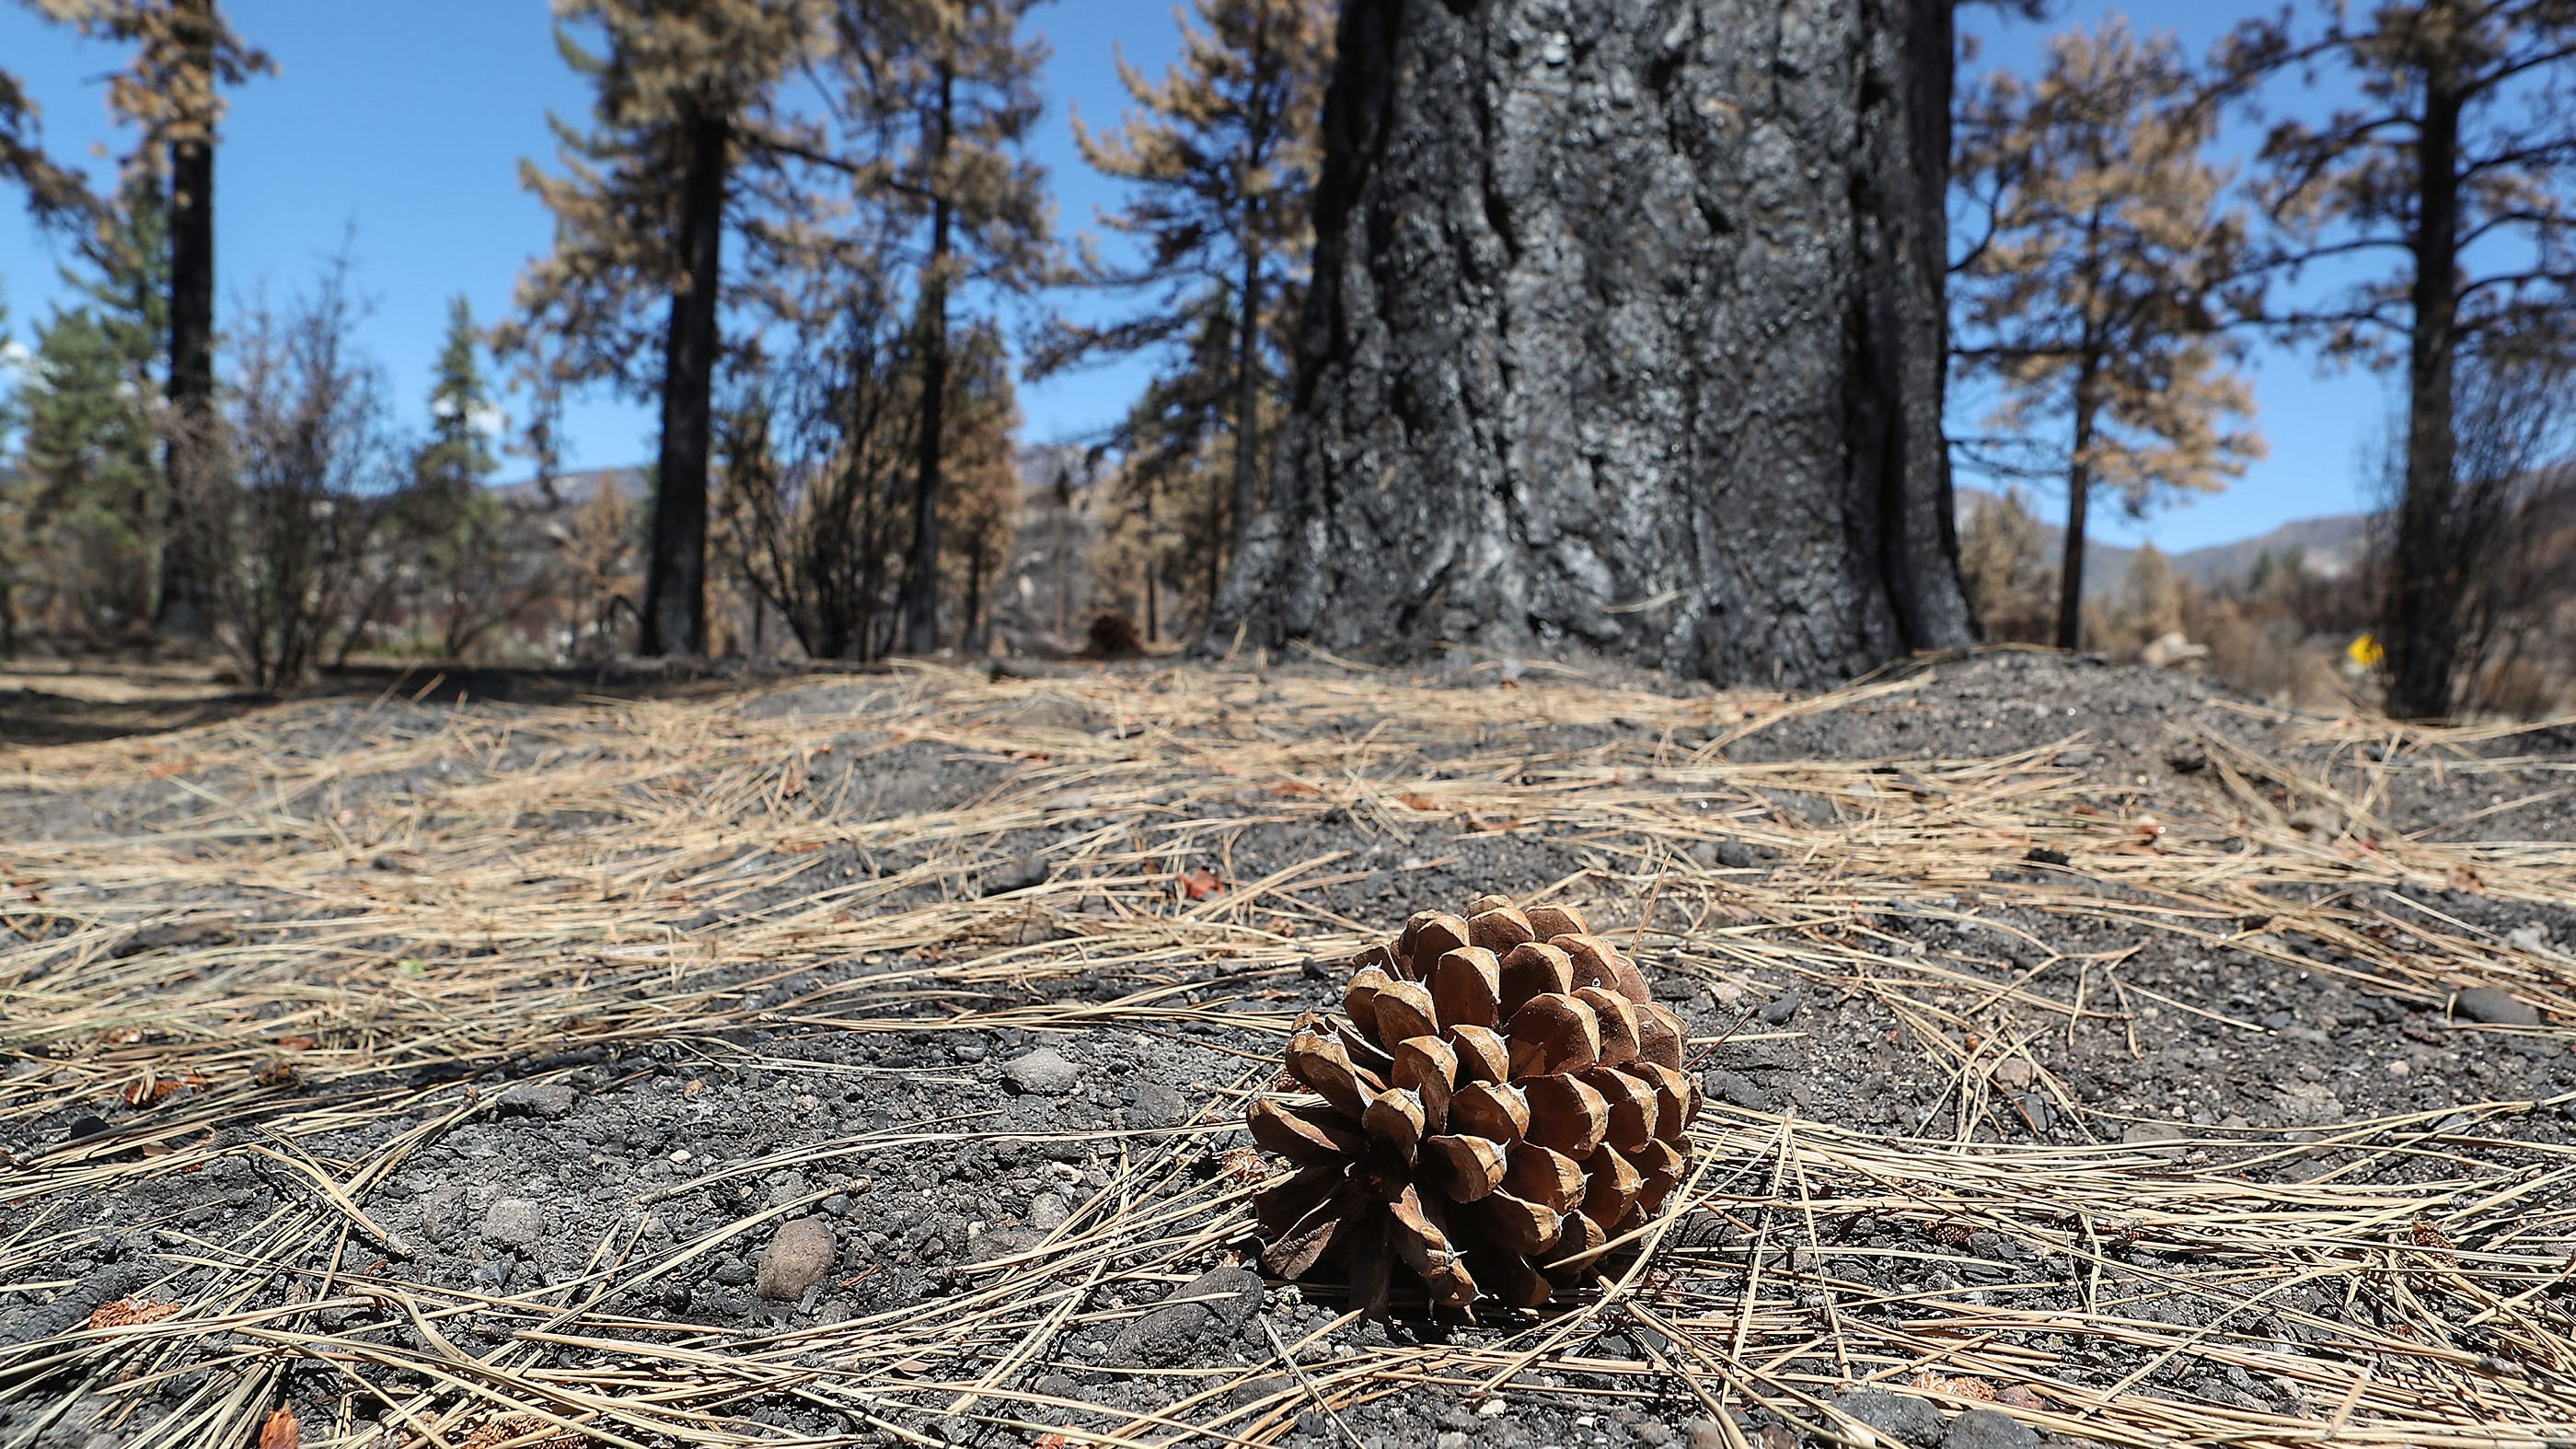 A conifer cone sits among needles from conifers that were damaged in the Cranston fire in the San Jacinto Wilderness, September 4, 2018.